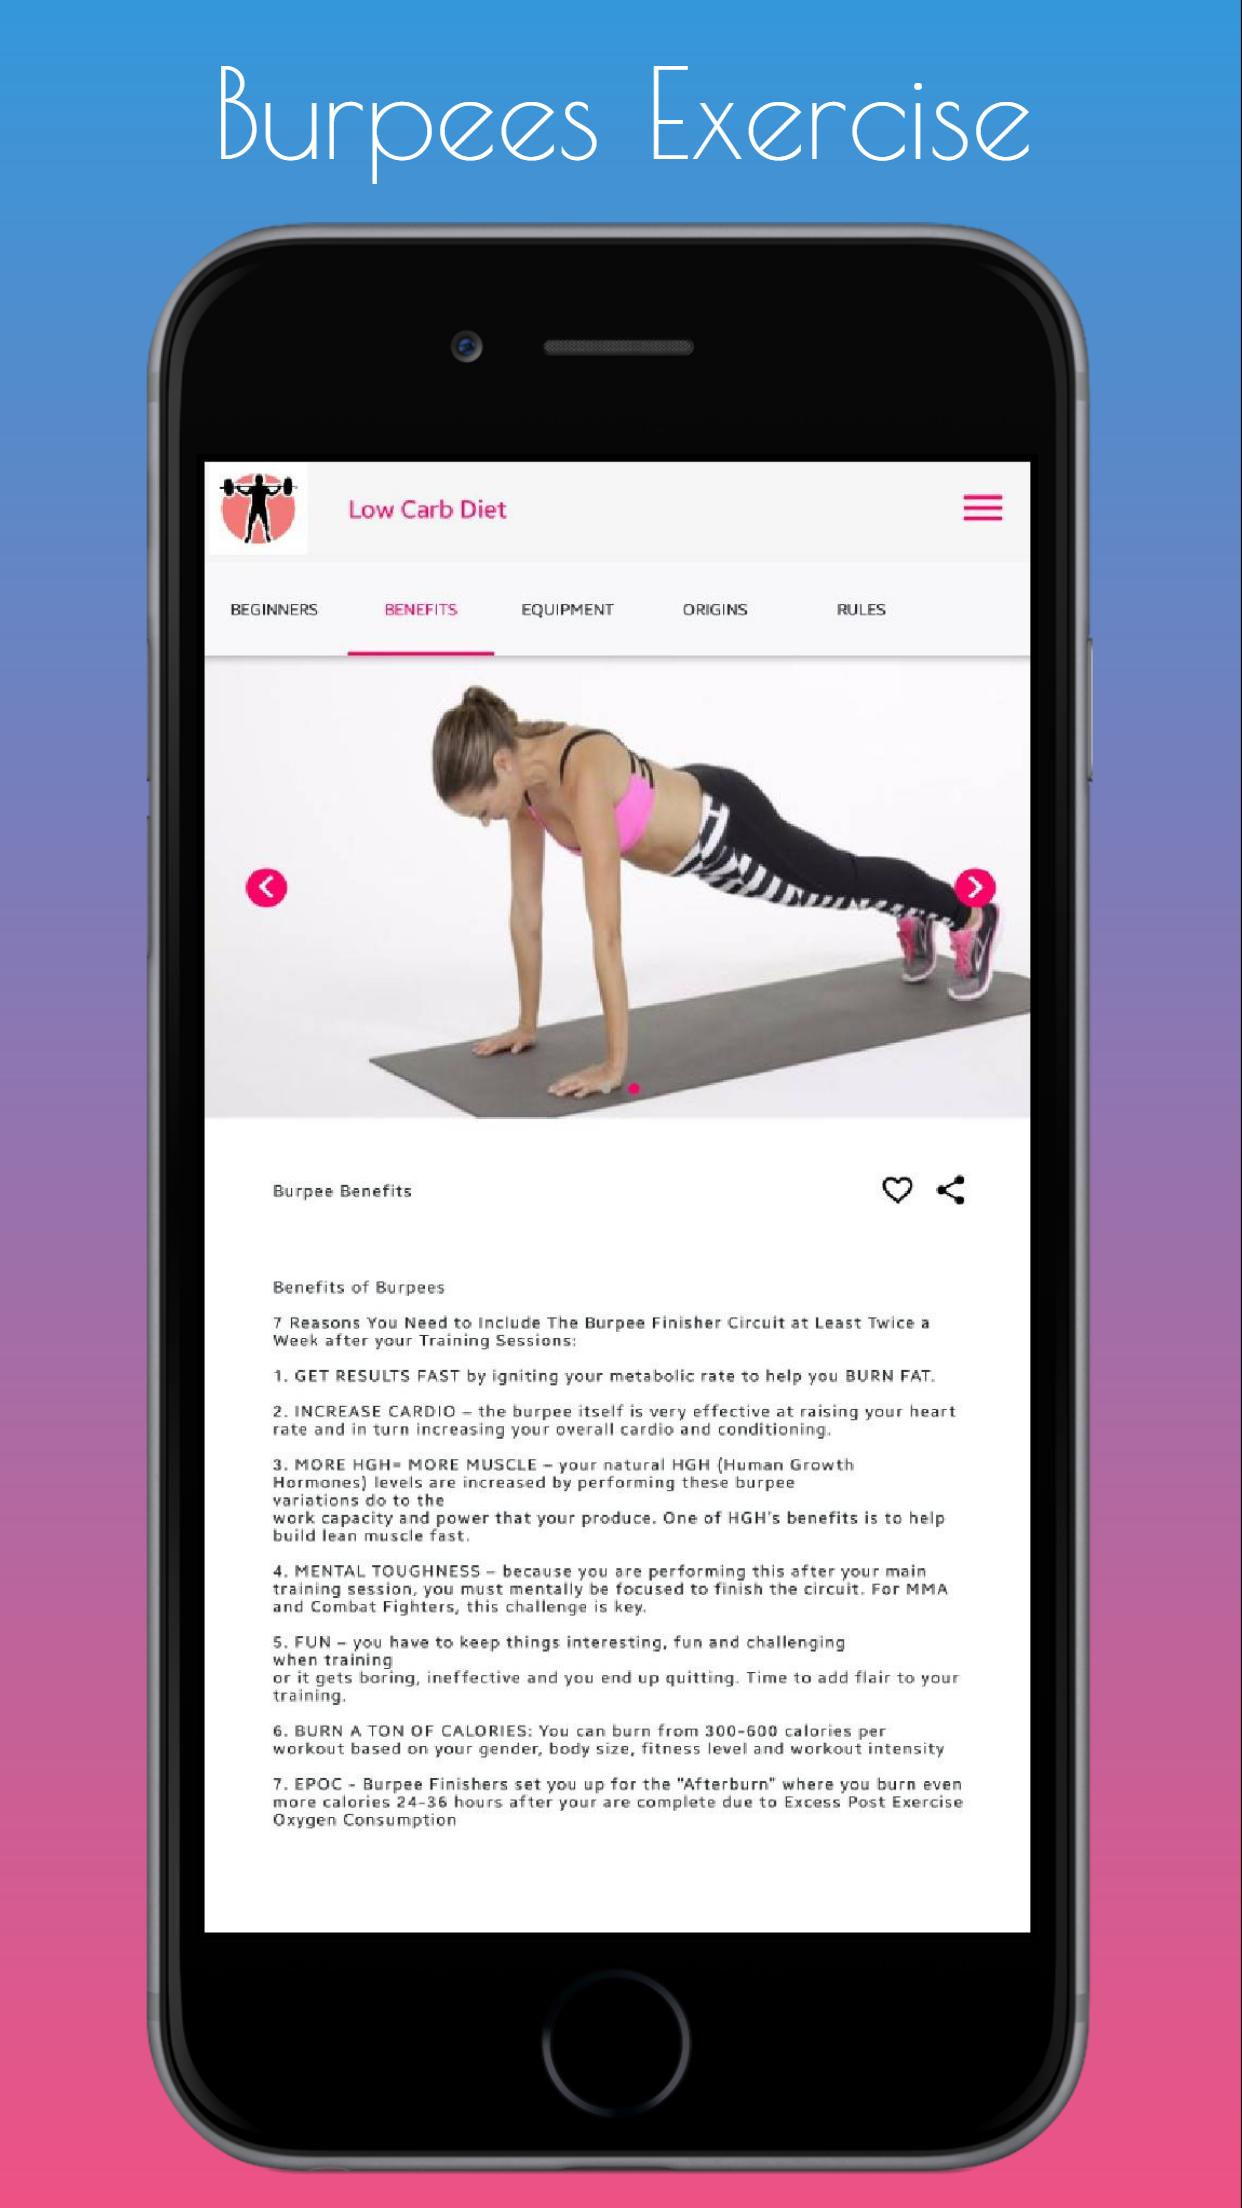 Burpees Exercise for Android - APK Download